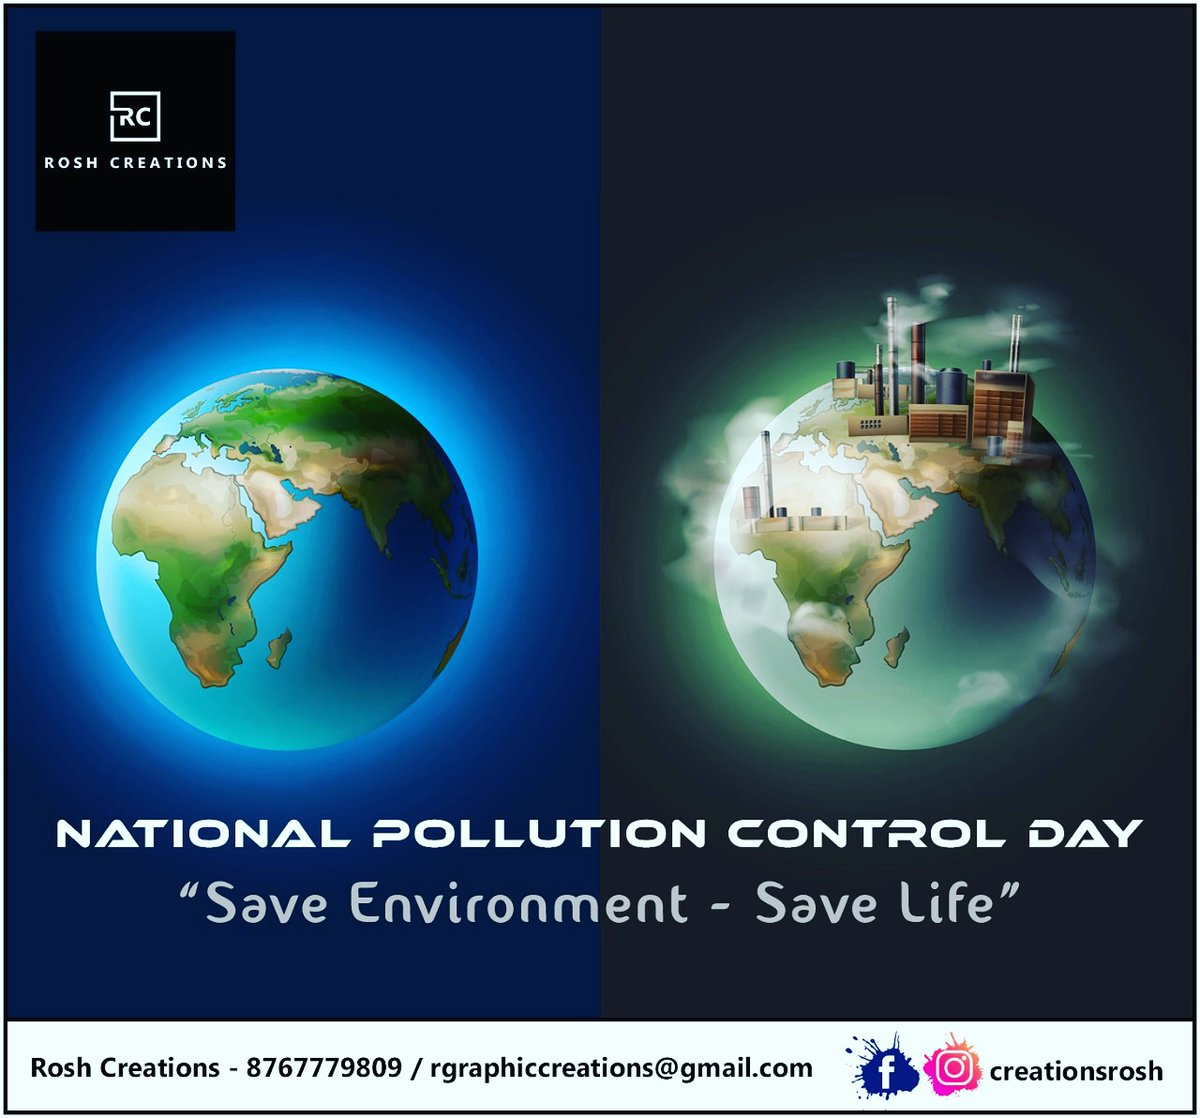 #NationalPollutionControlDay : It's Not That Hard!  Plant Trees Save Energy Avoid Plastic Take a walk for short distances  *With these simple SMALL steps, we can make a BIG change.*  #roshcreations @creationsrosh #BeResponsible #pollutioncontrolday #pollution #pollutionfree